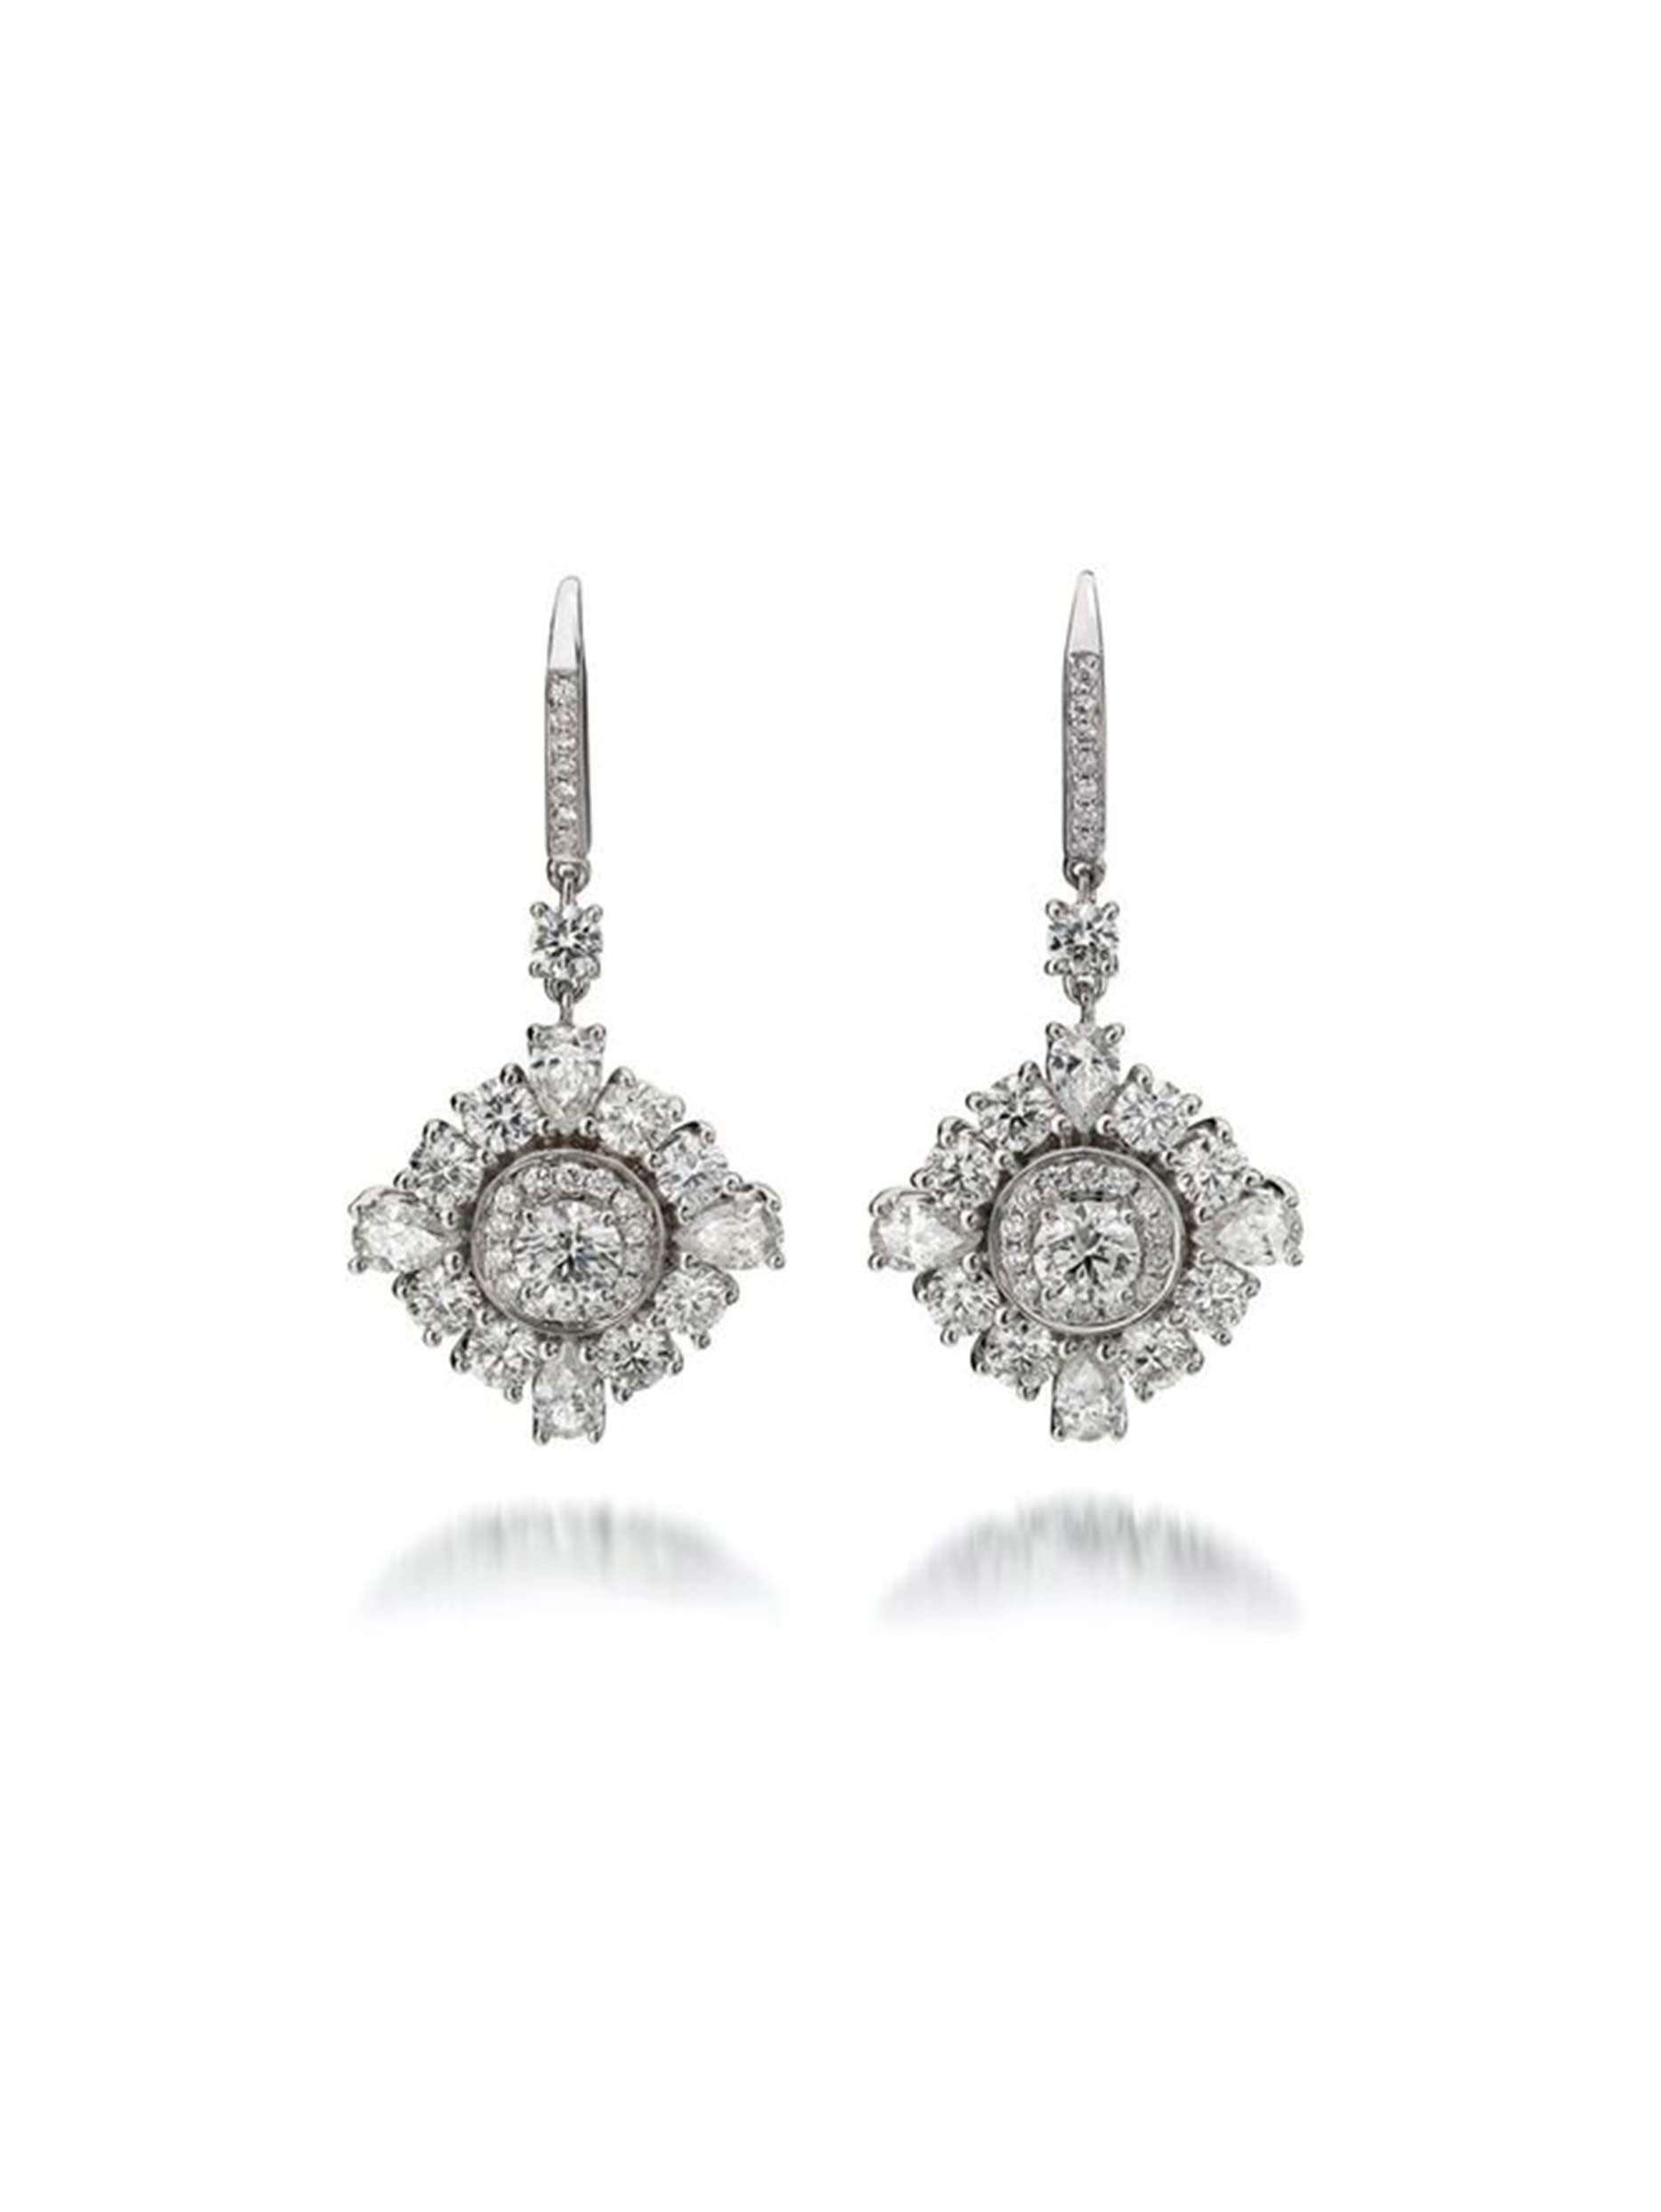 Princess Star Drop Diamond Earrings